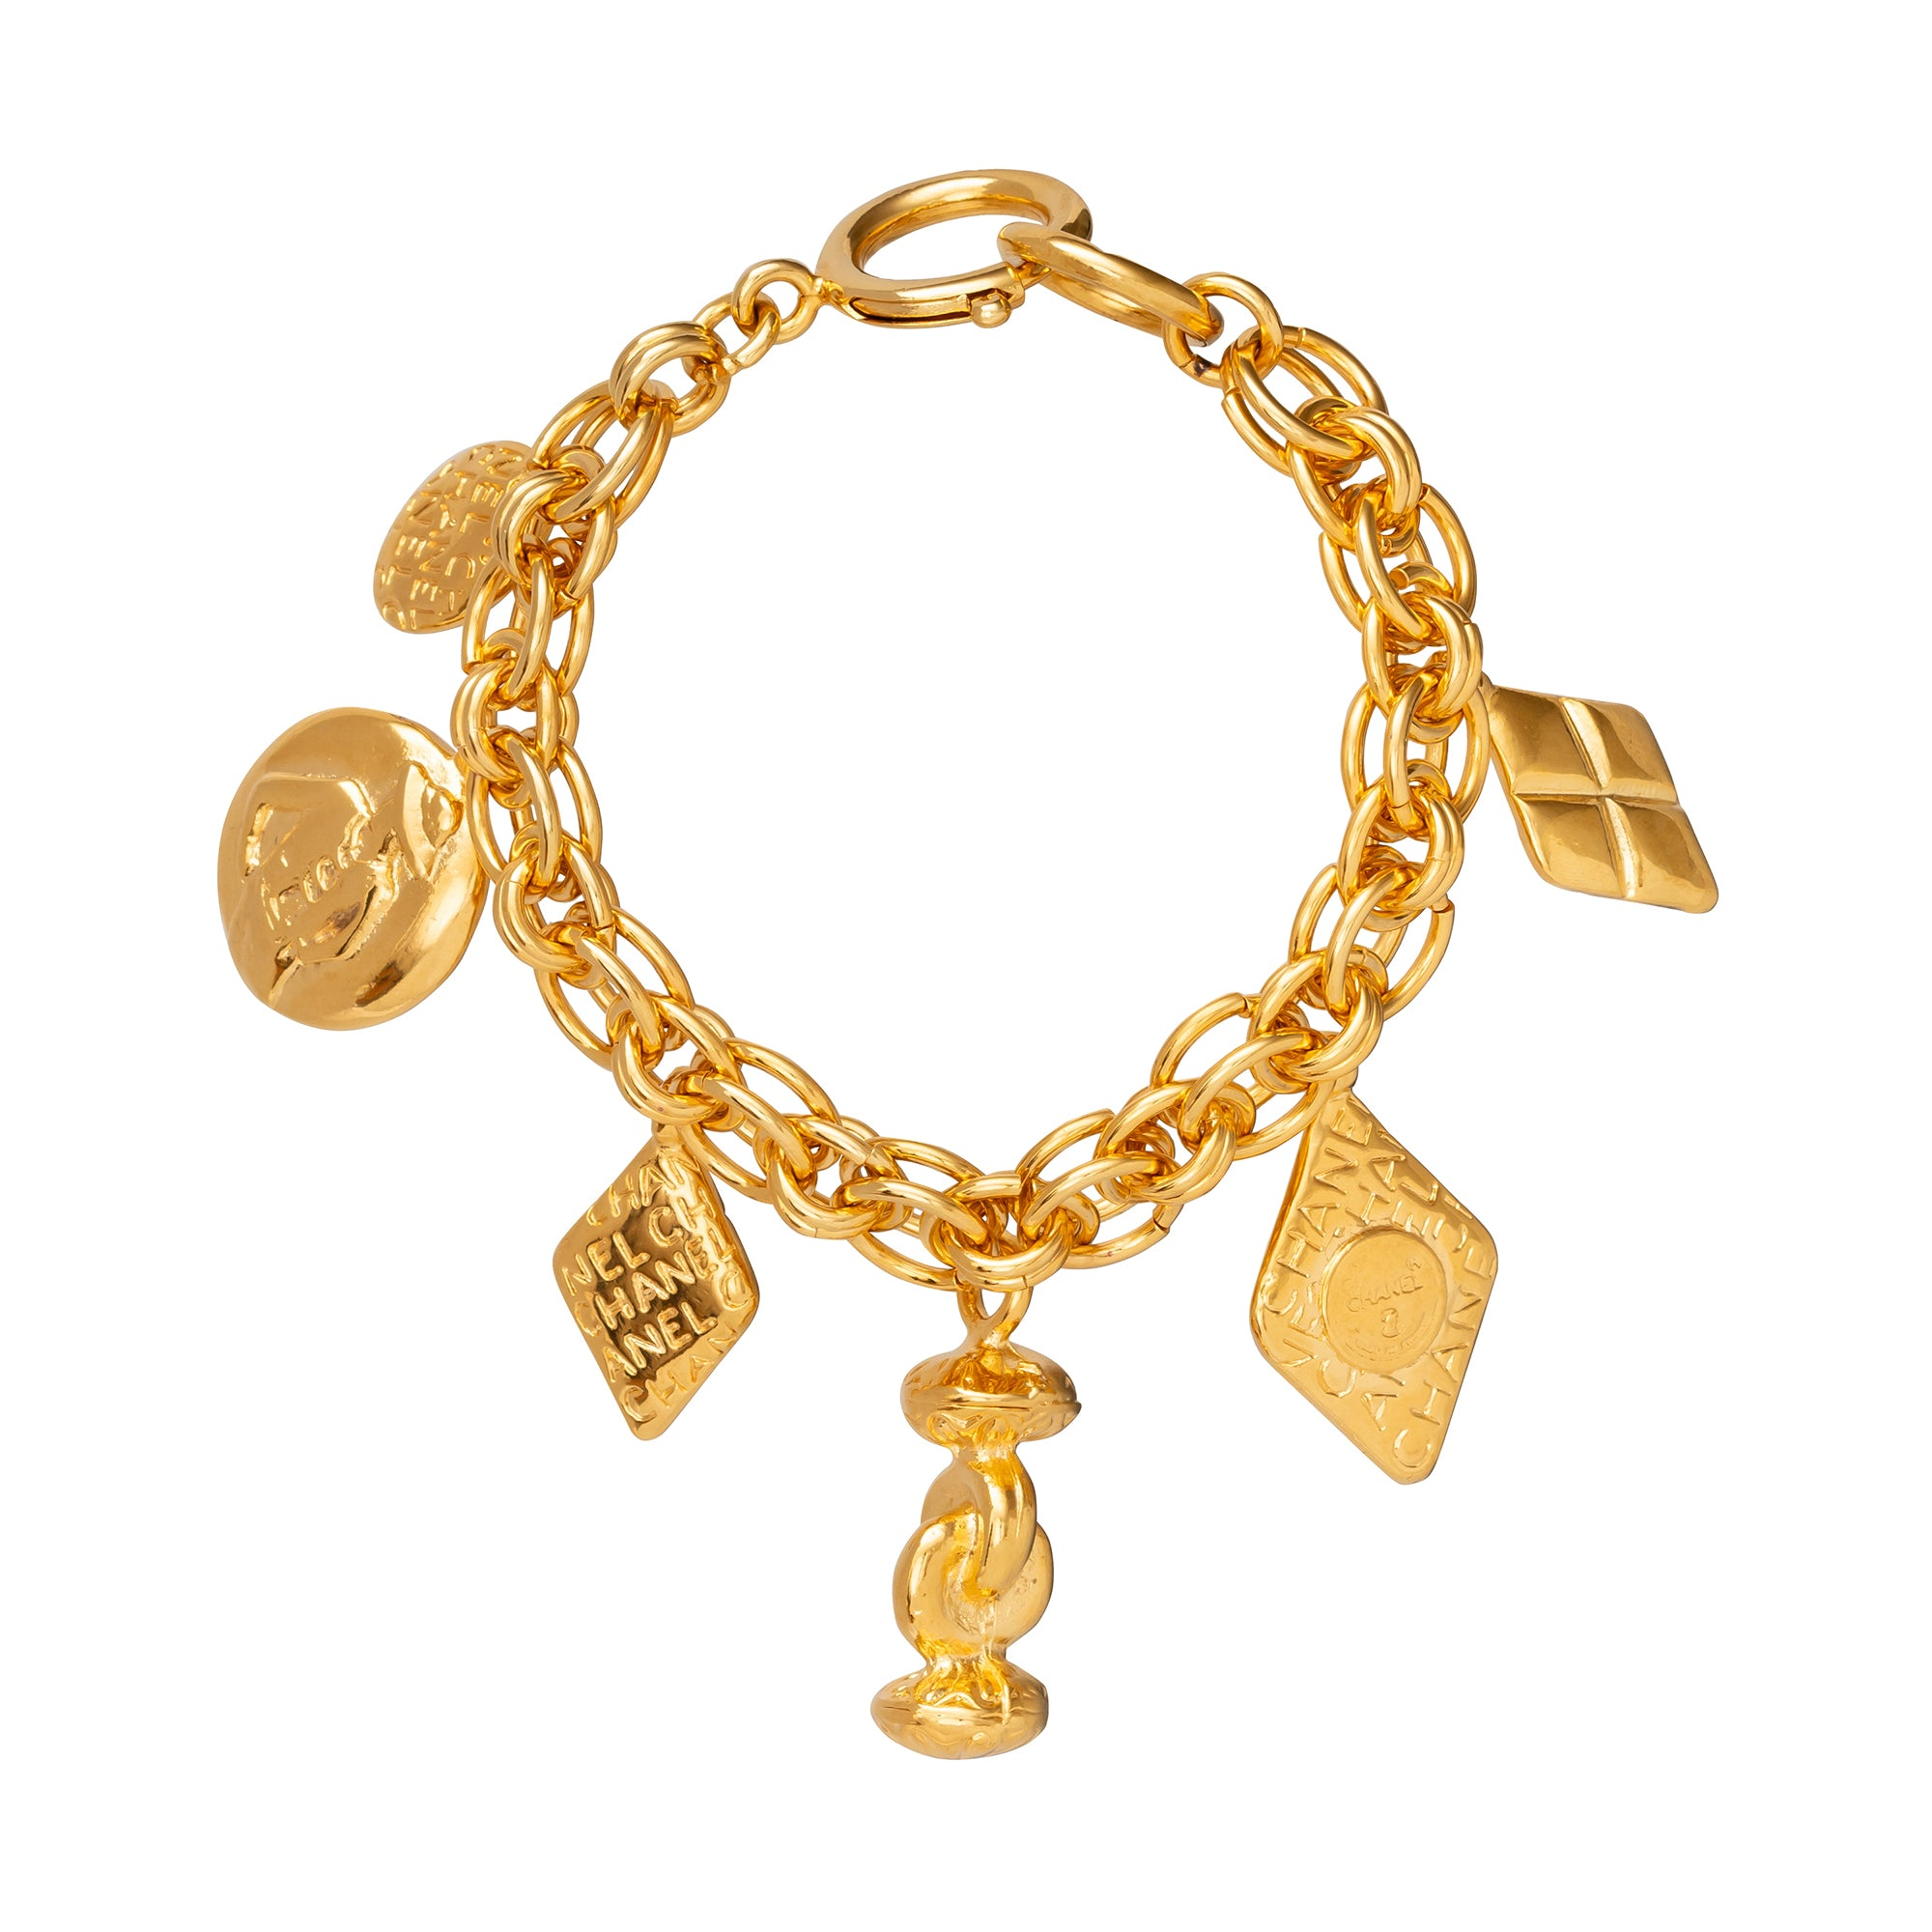 Chanel 6 Iconic Charms Bracelet - Antique & Vintage - Bracelets | Broken English Jewelry